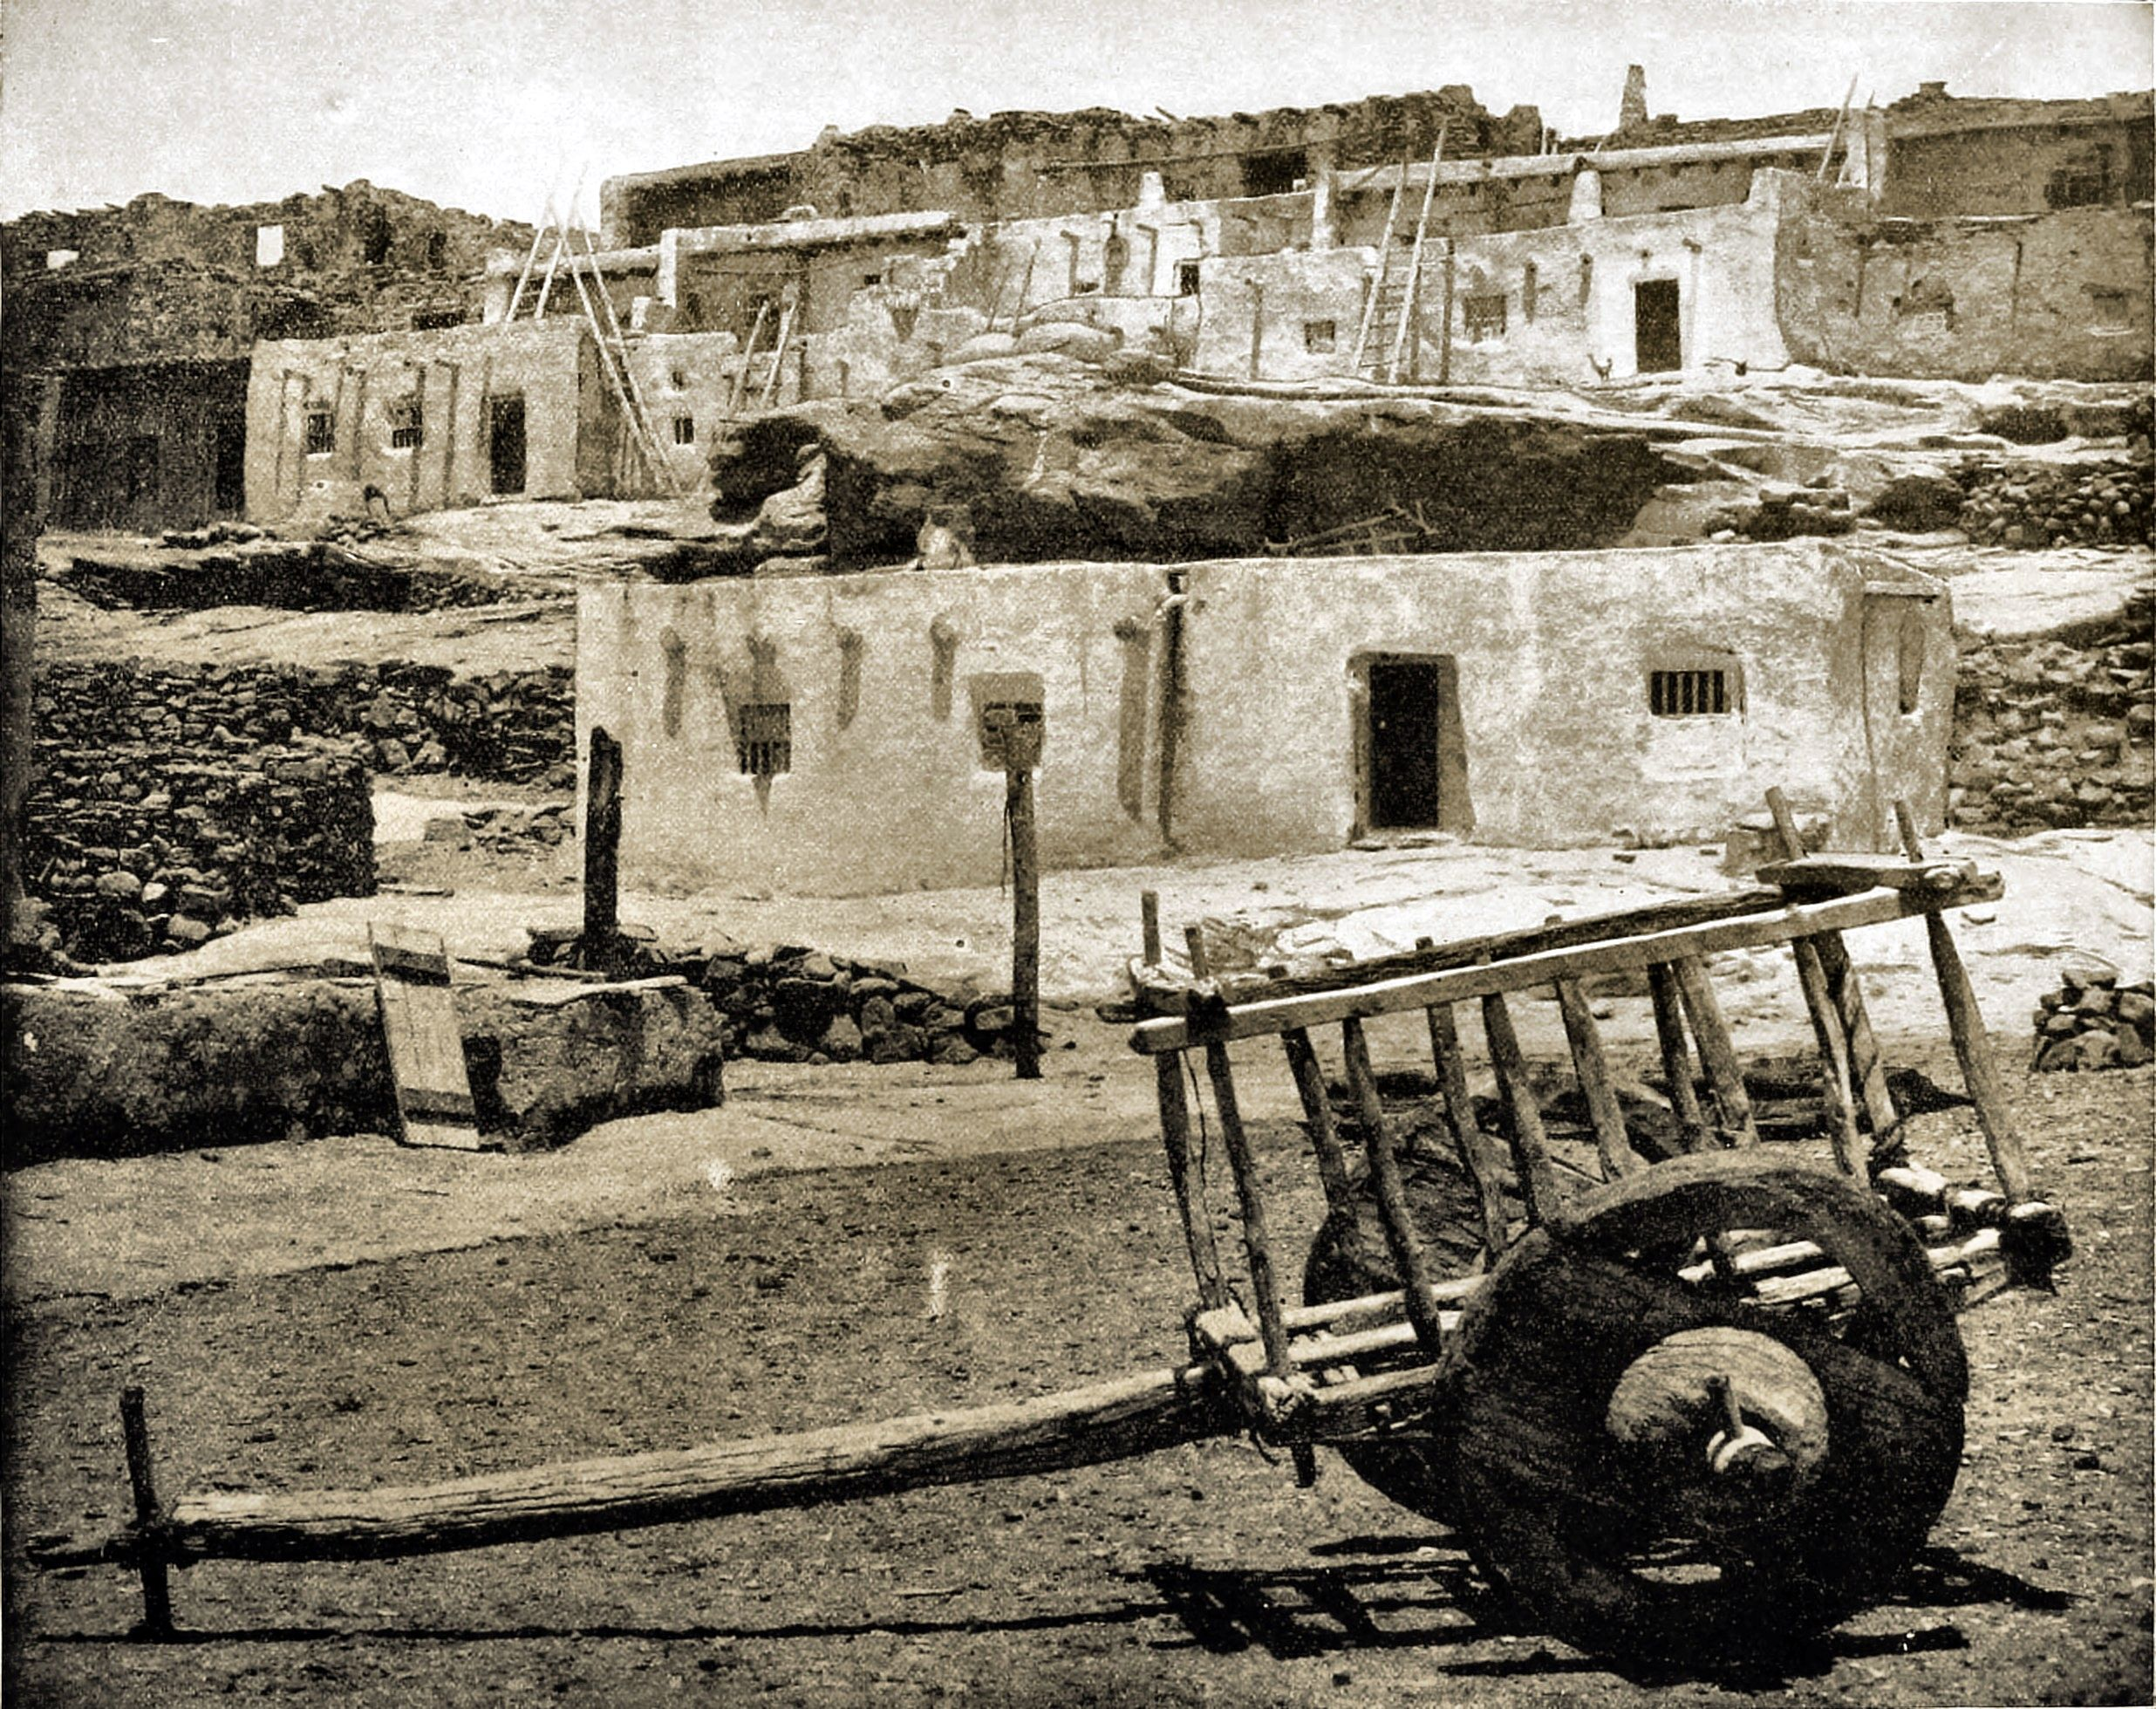 Adobe Houses, New Mexico, USA about 1892